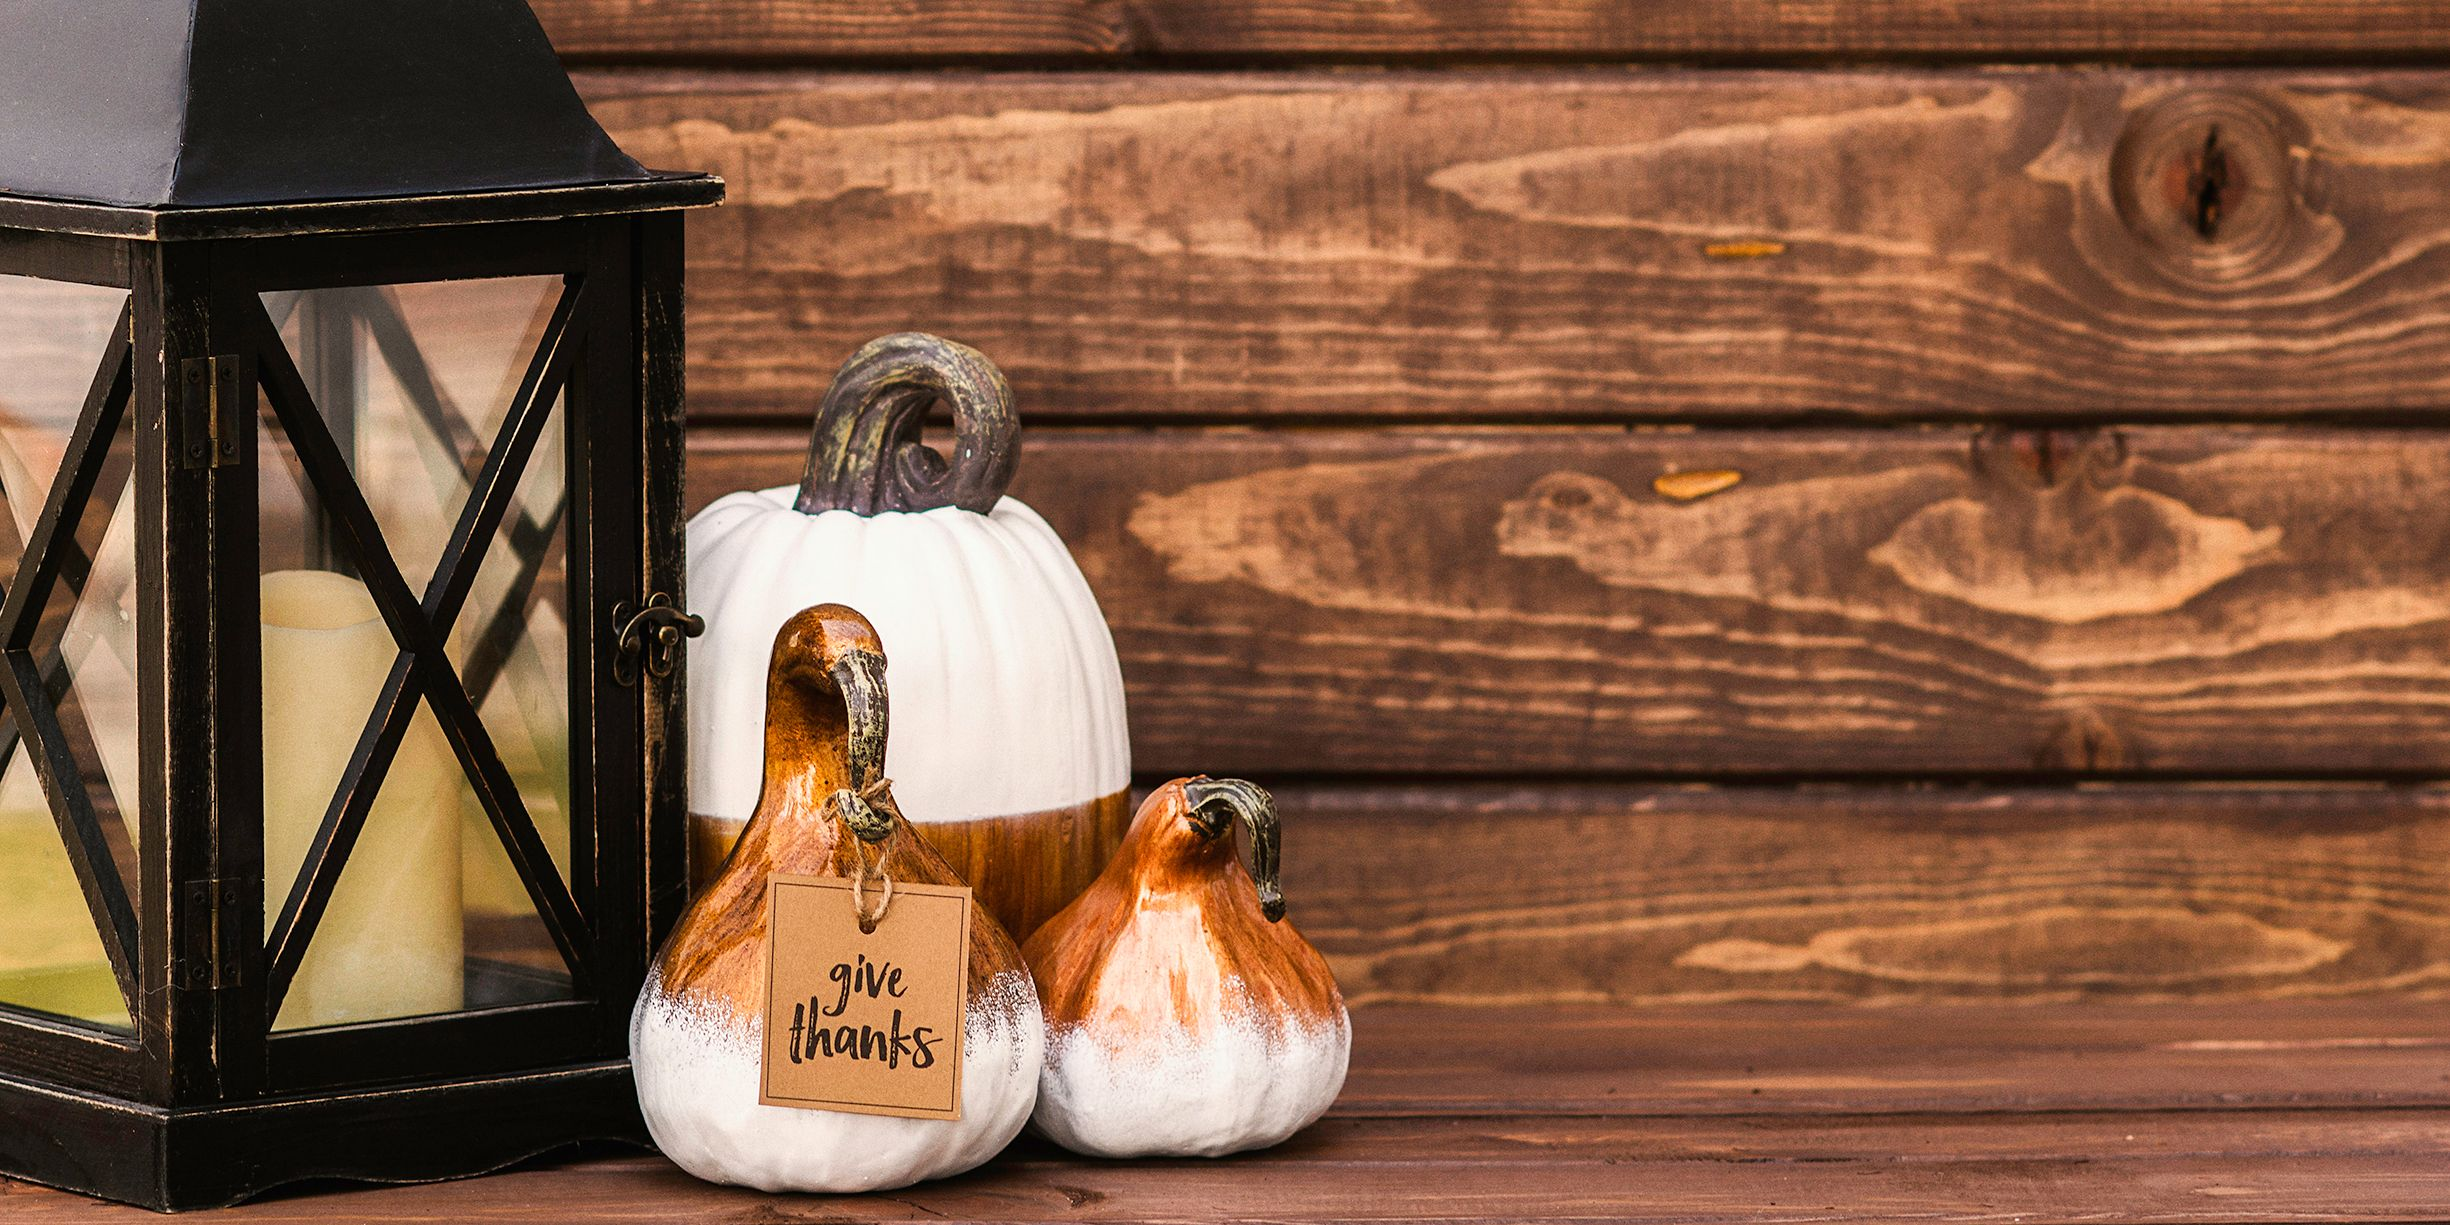 50 Festive and Cozy Ideas for Thanksgiving Decorations